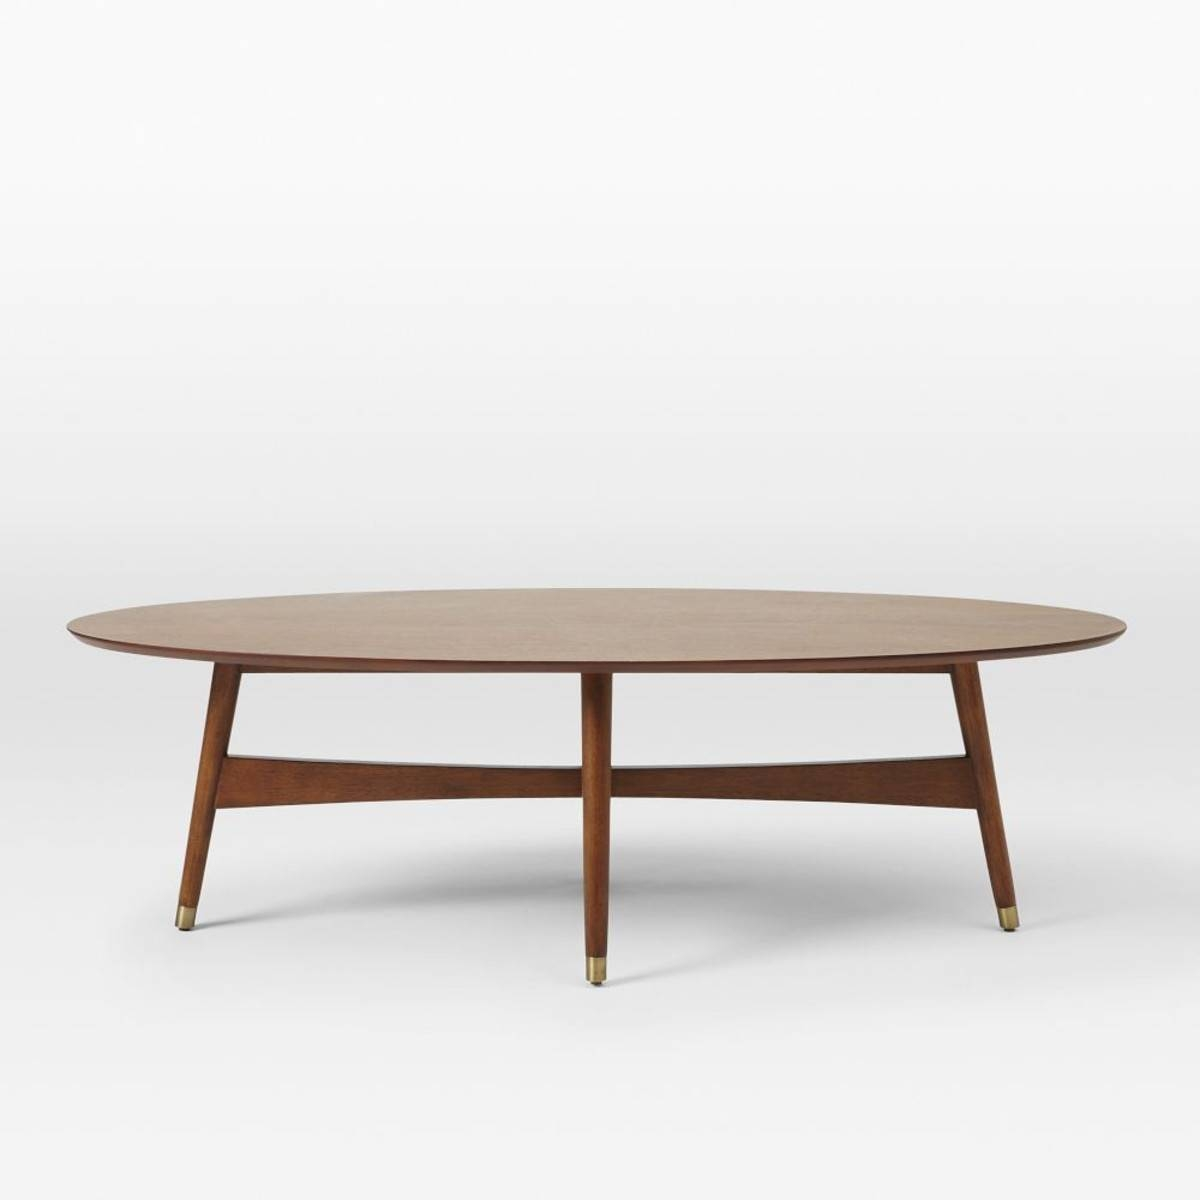 Build An Oval Wood Coffee Table With Oval Walnut Coffee Tables (View 19 of 30)